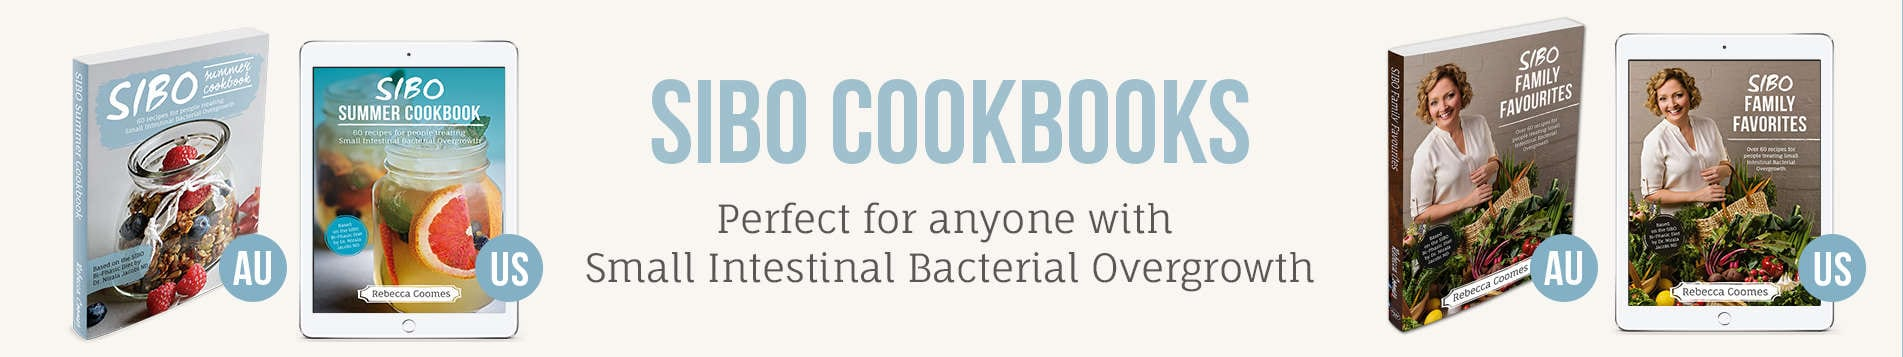 Sibo Cookbooks Web Homepage Header